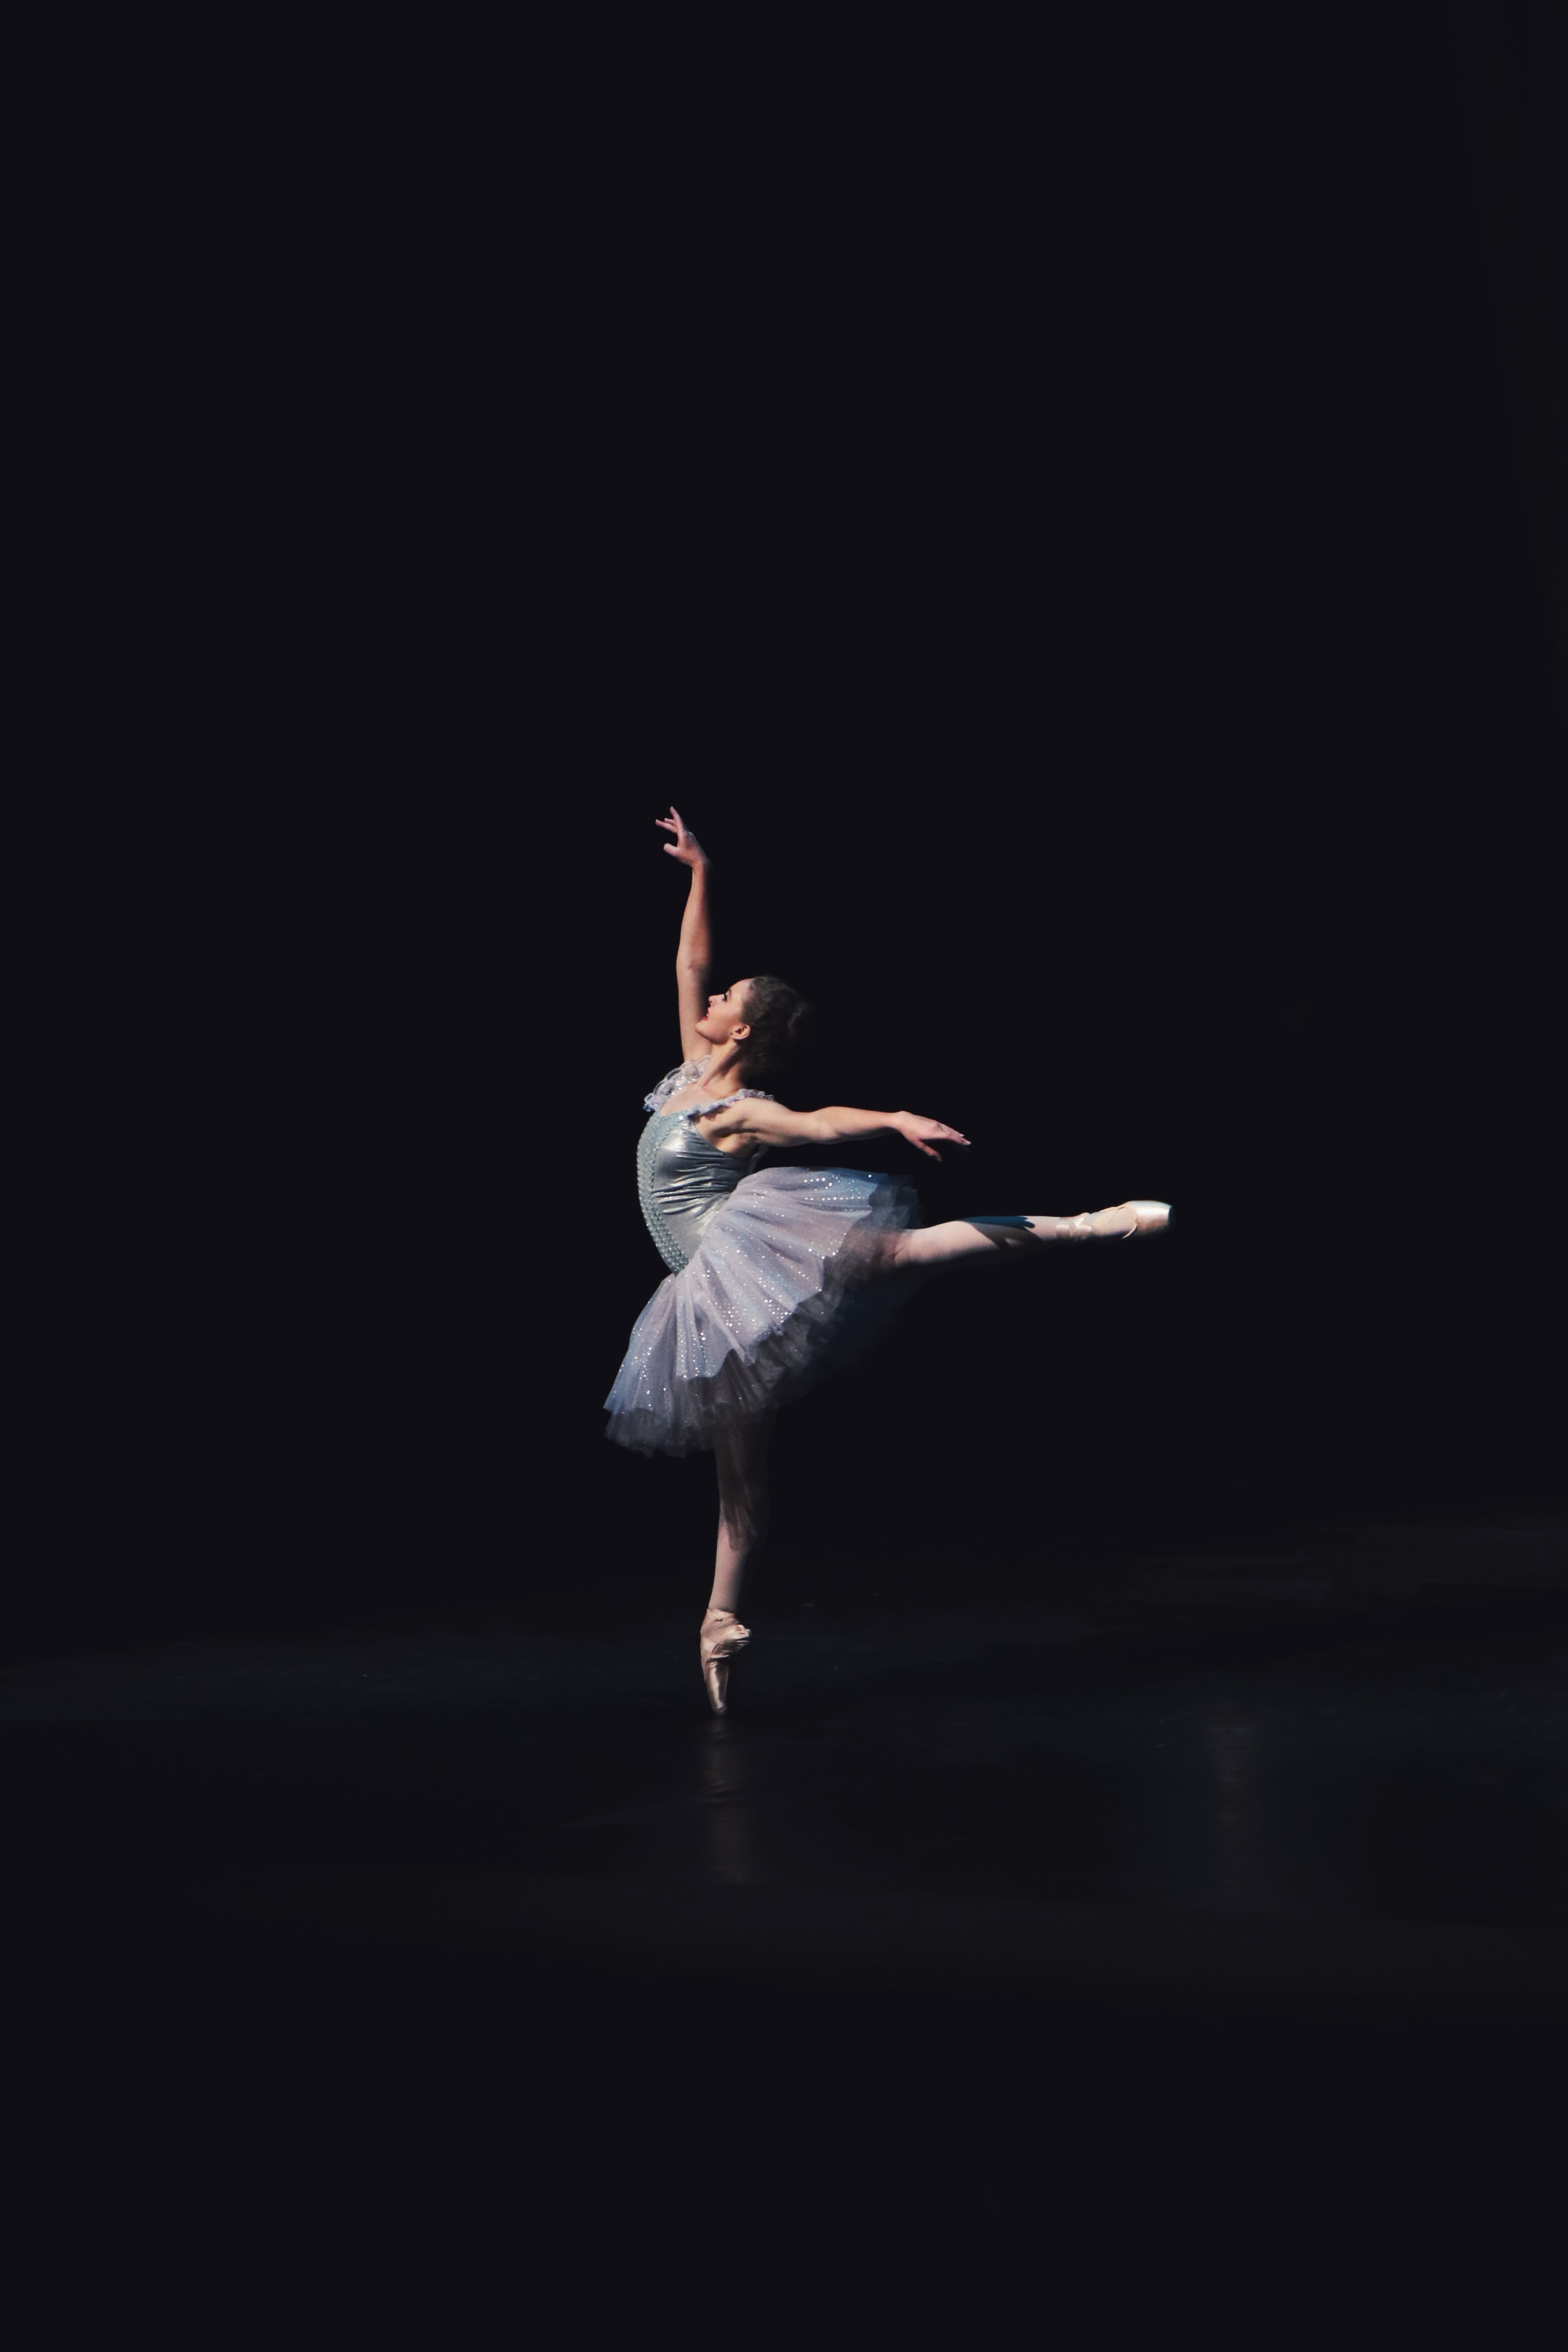 Ballet dancer performing in rehearsal executing graceful pose in dark room